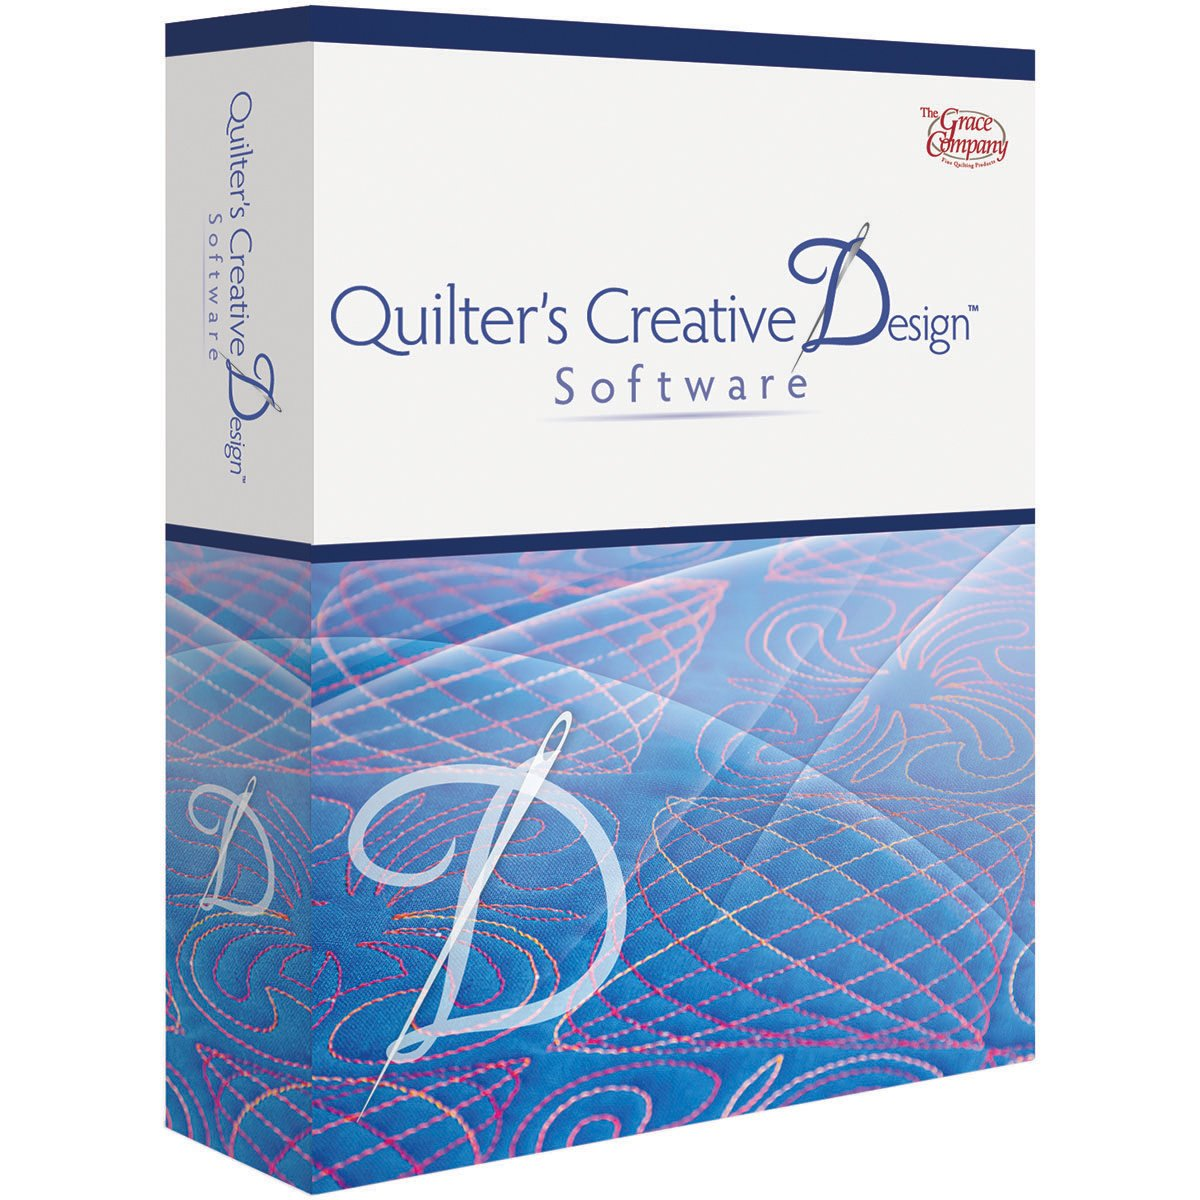 Quilter's Creative Design Software by The Grace Company